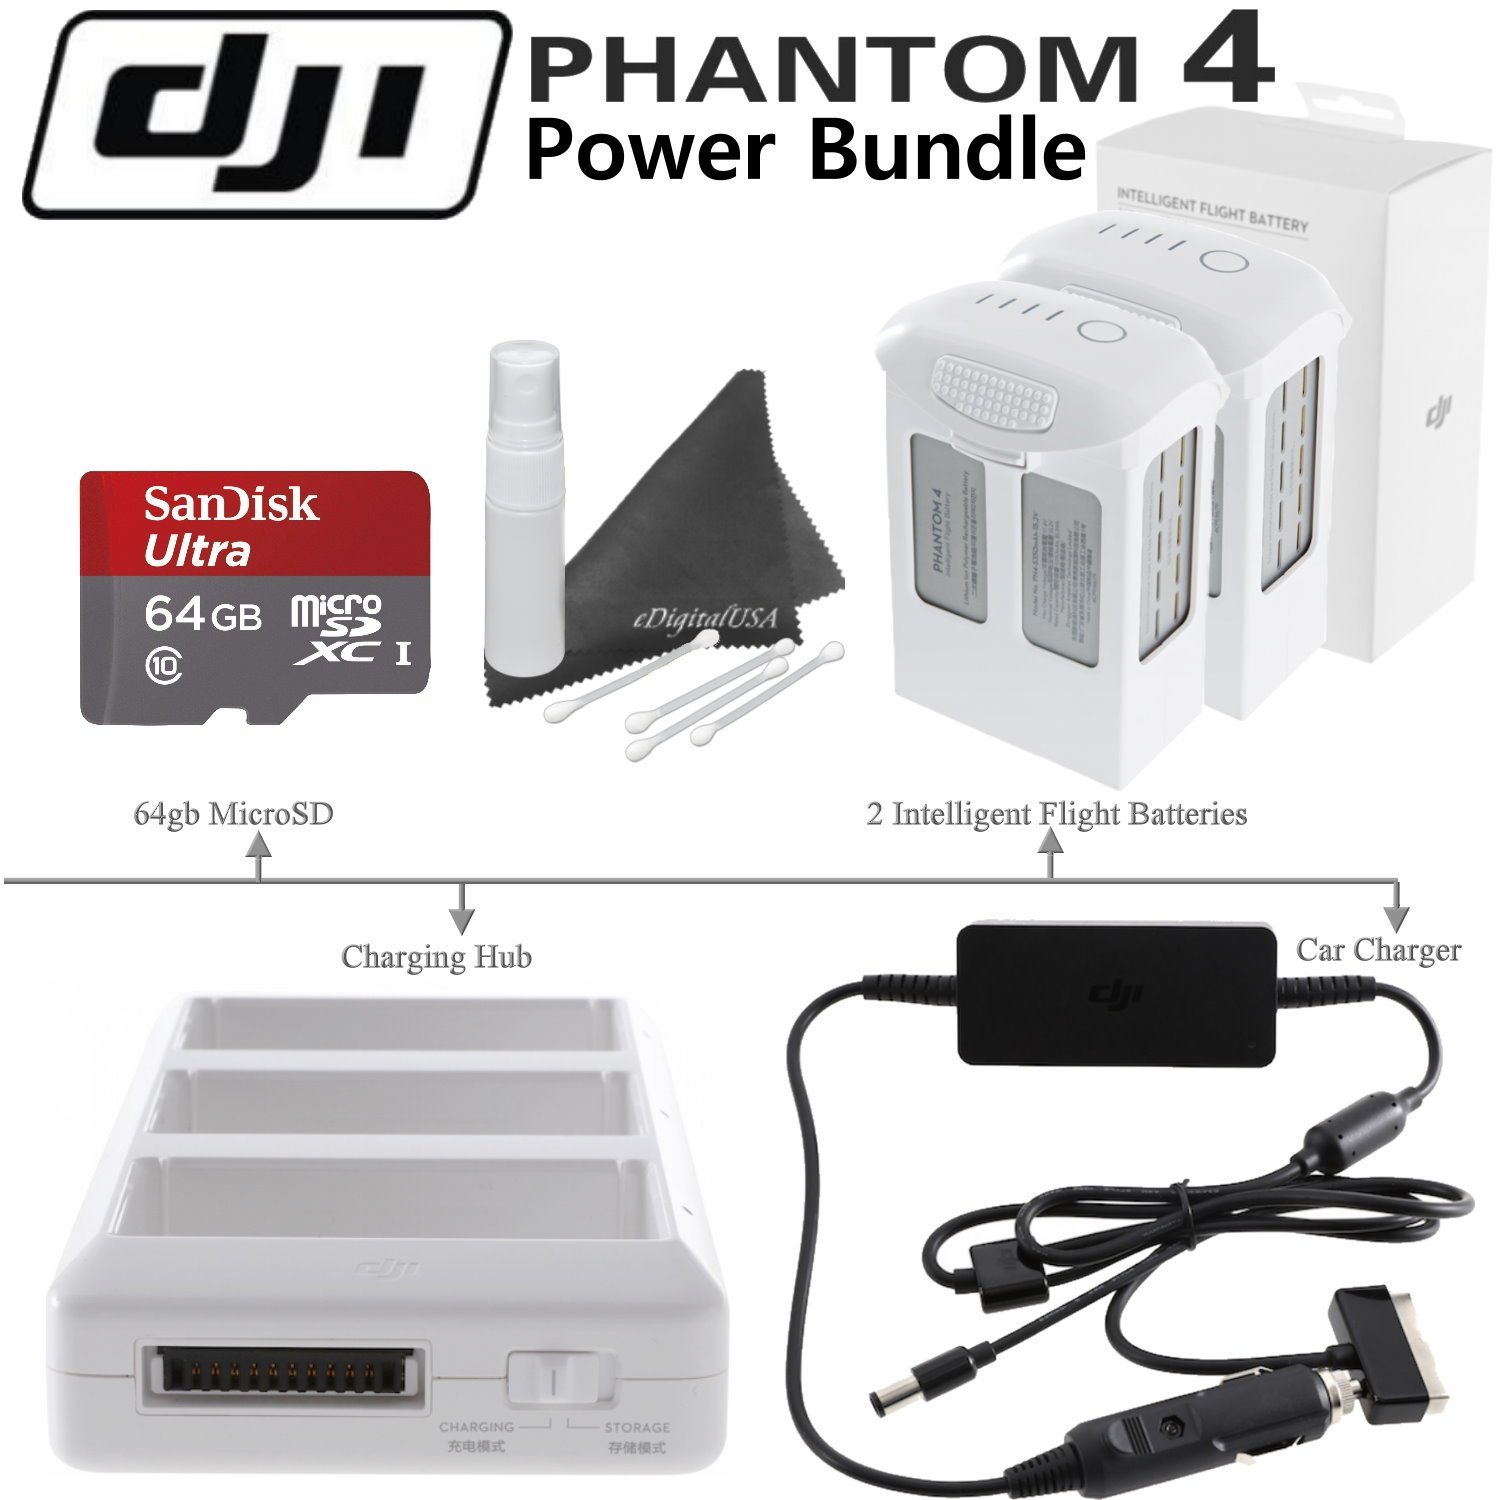 DJI Phantom 4 Power Bundle: Includes 2 Phantom 4 Intelligent Flight Batteries, Charging Hub, Car Battery Charger, SanDisk 64GB MicroSD Card & eDigitalUSA Cleaning Kit by DJI